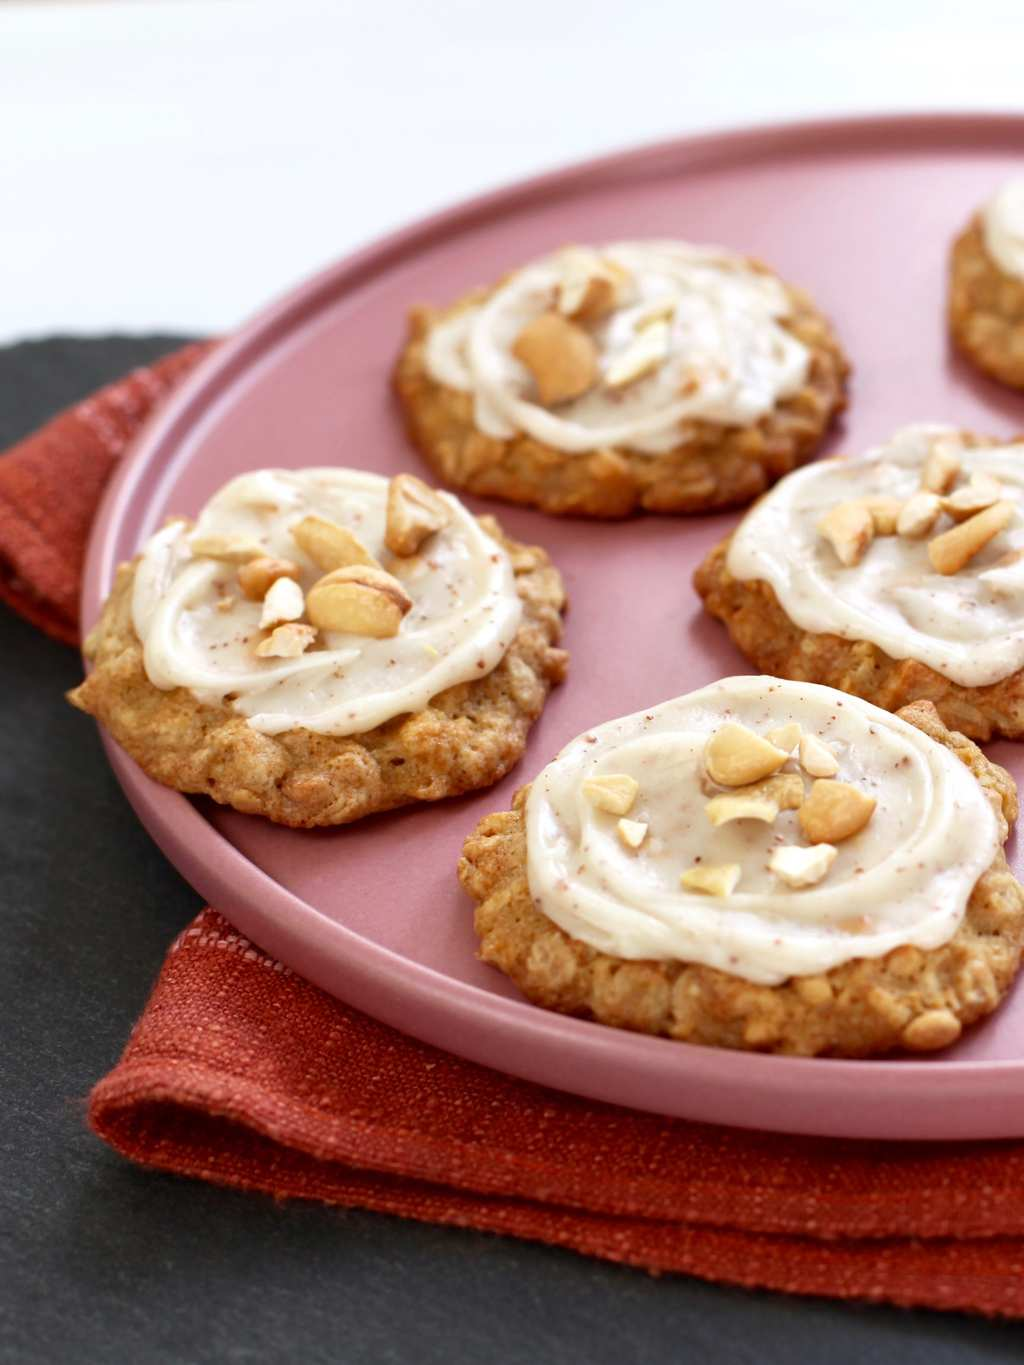 Cashew Cookies with Brown Butter Frosting on a pink plate close crop